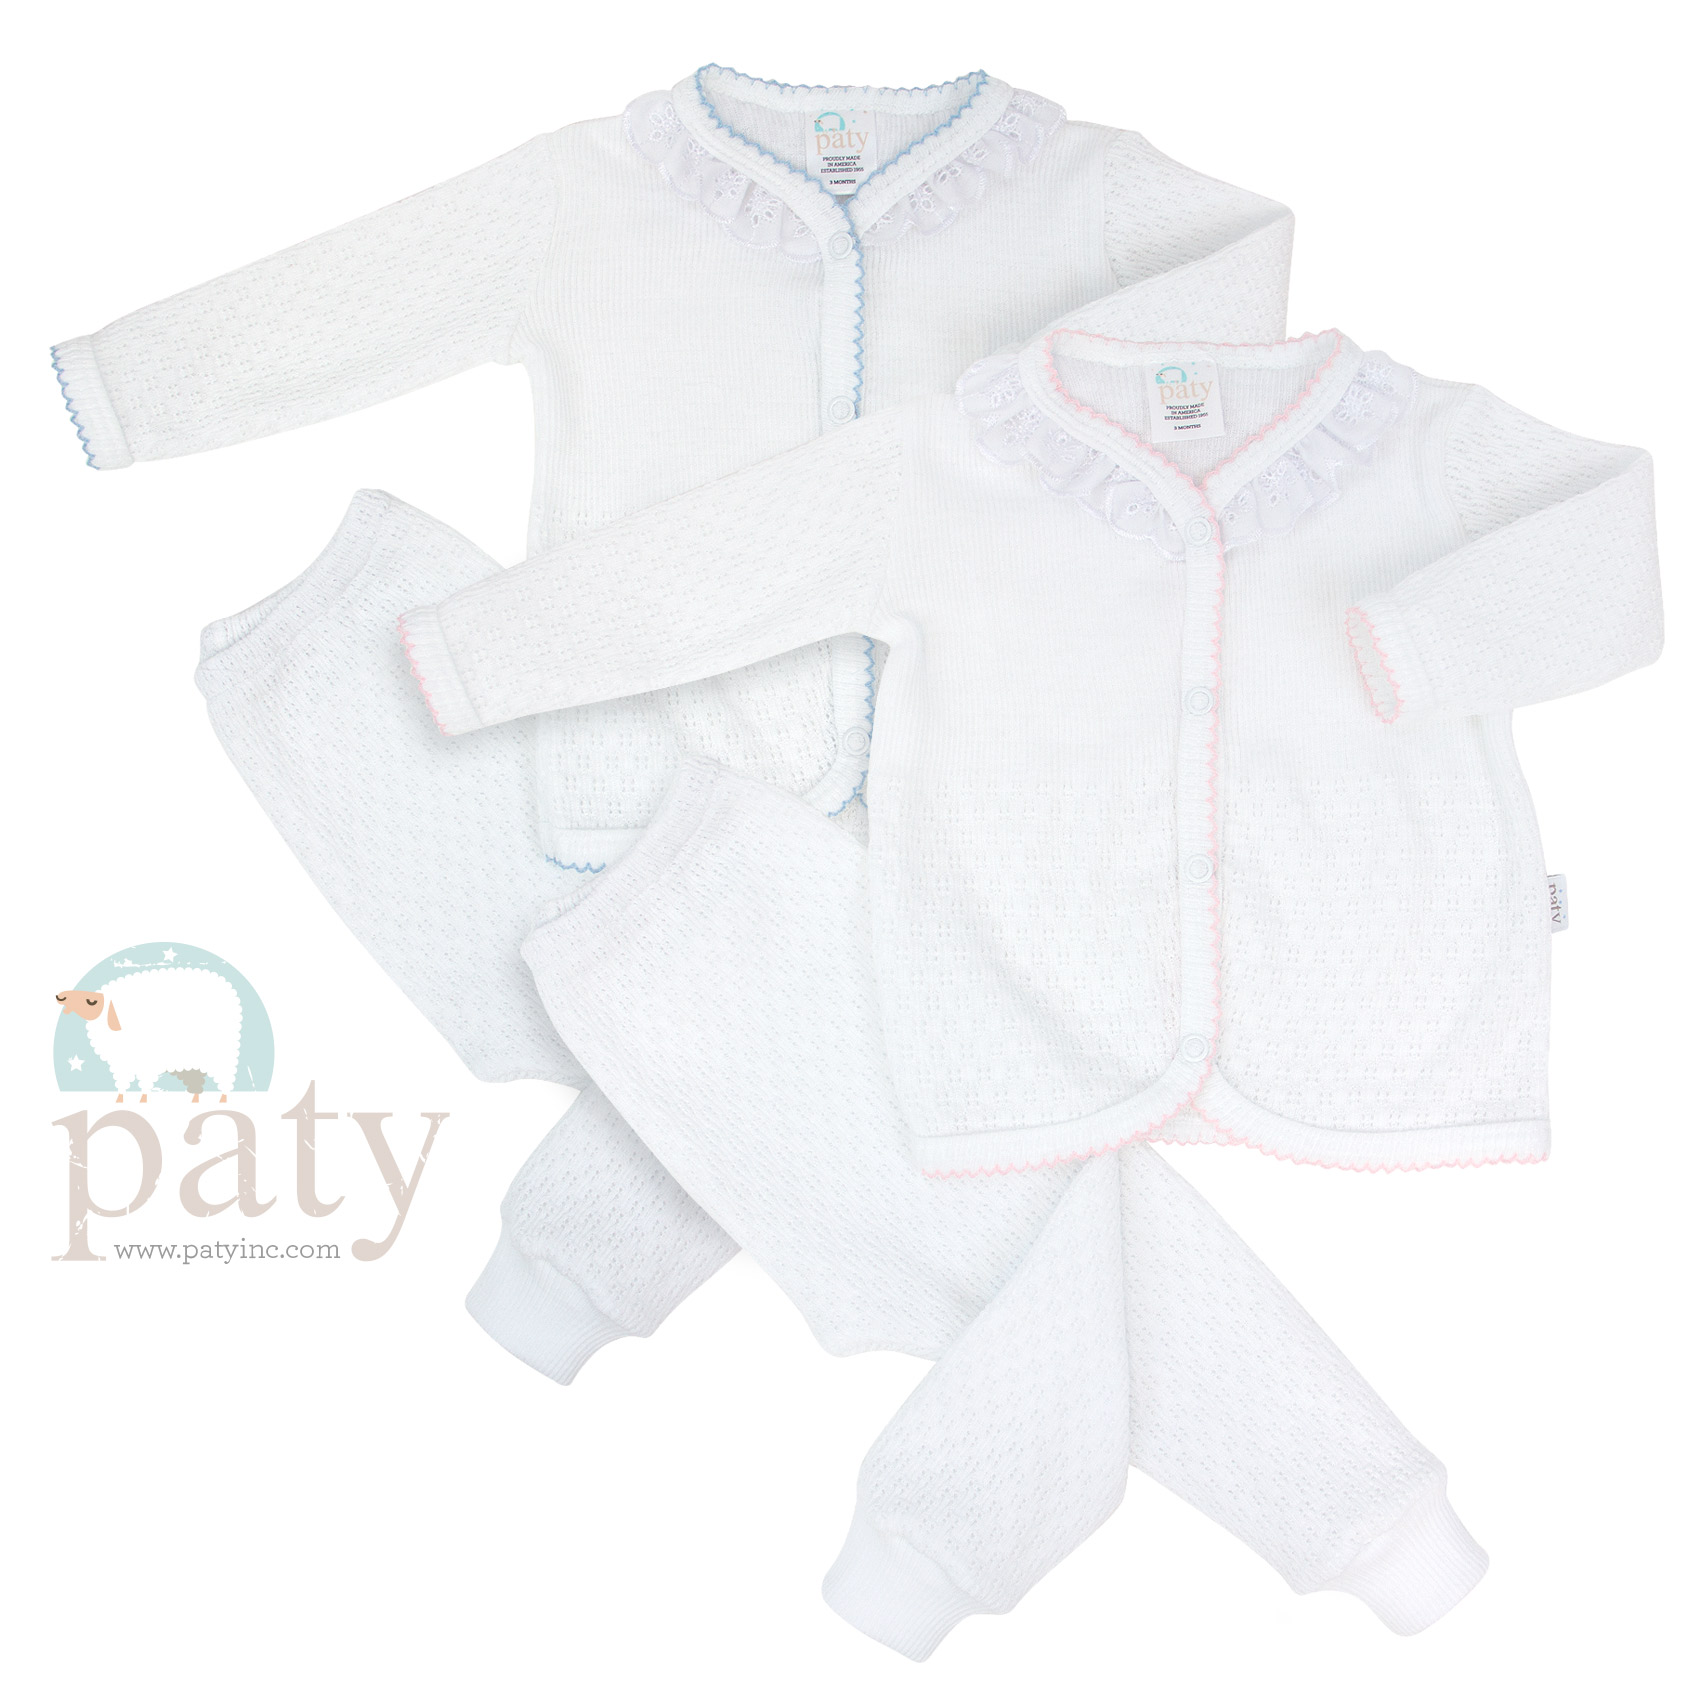 Paty Knit Signature White 2 PC Set with Eyelet Trim and Long Pants